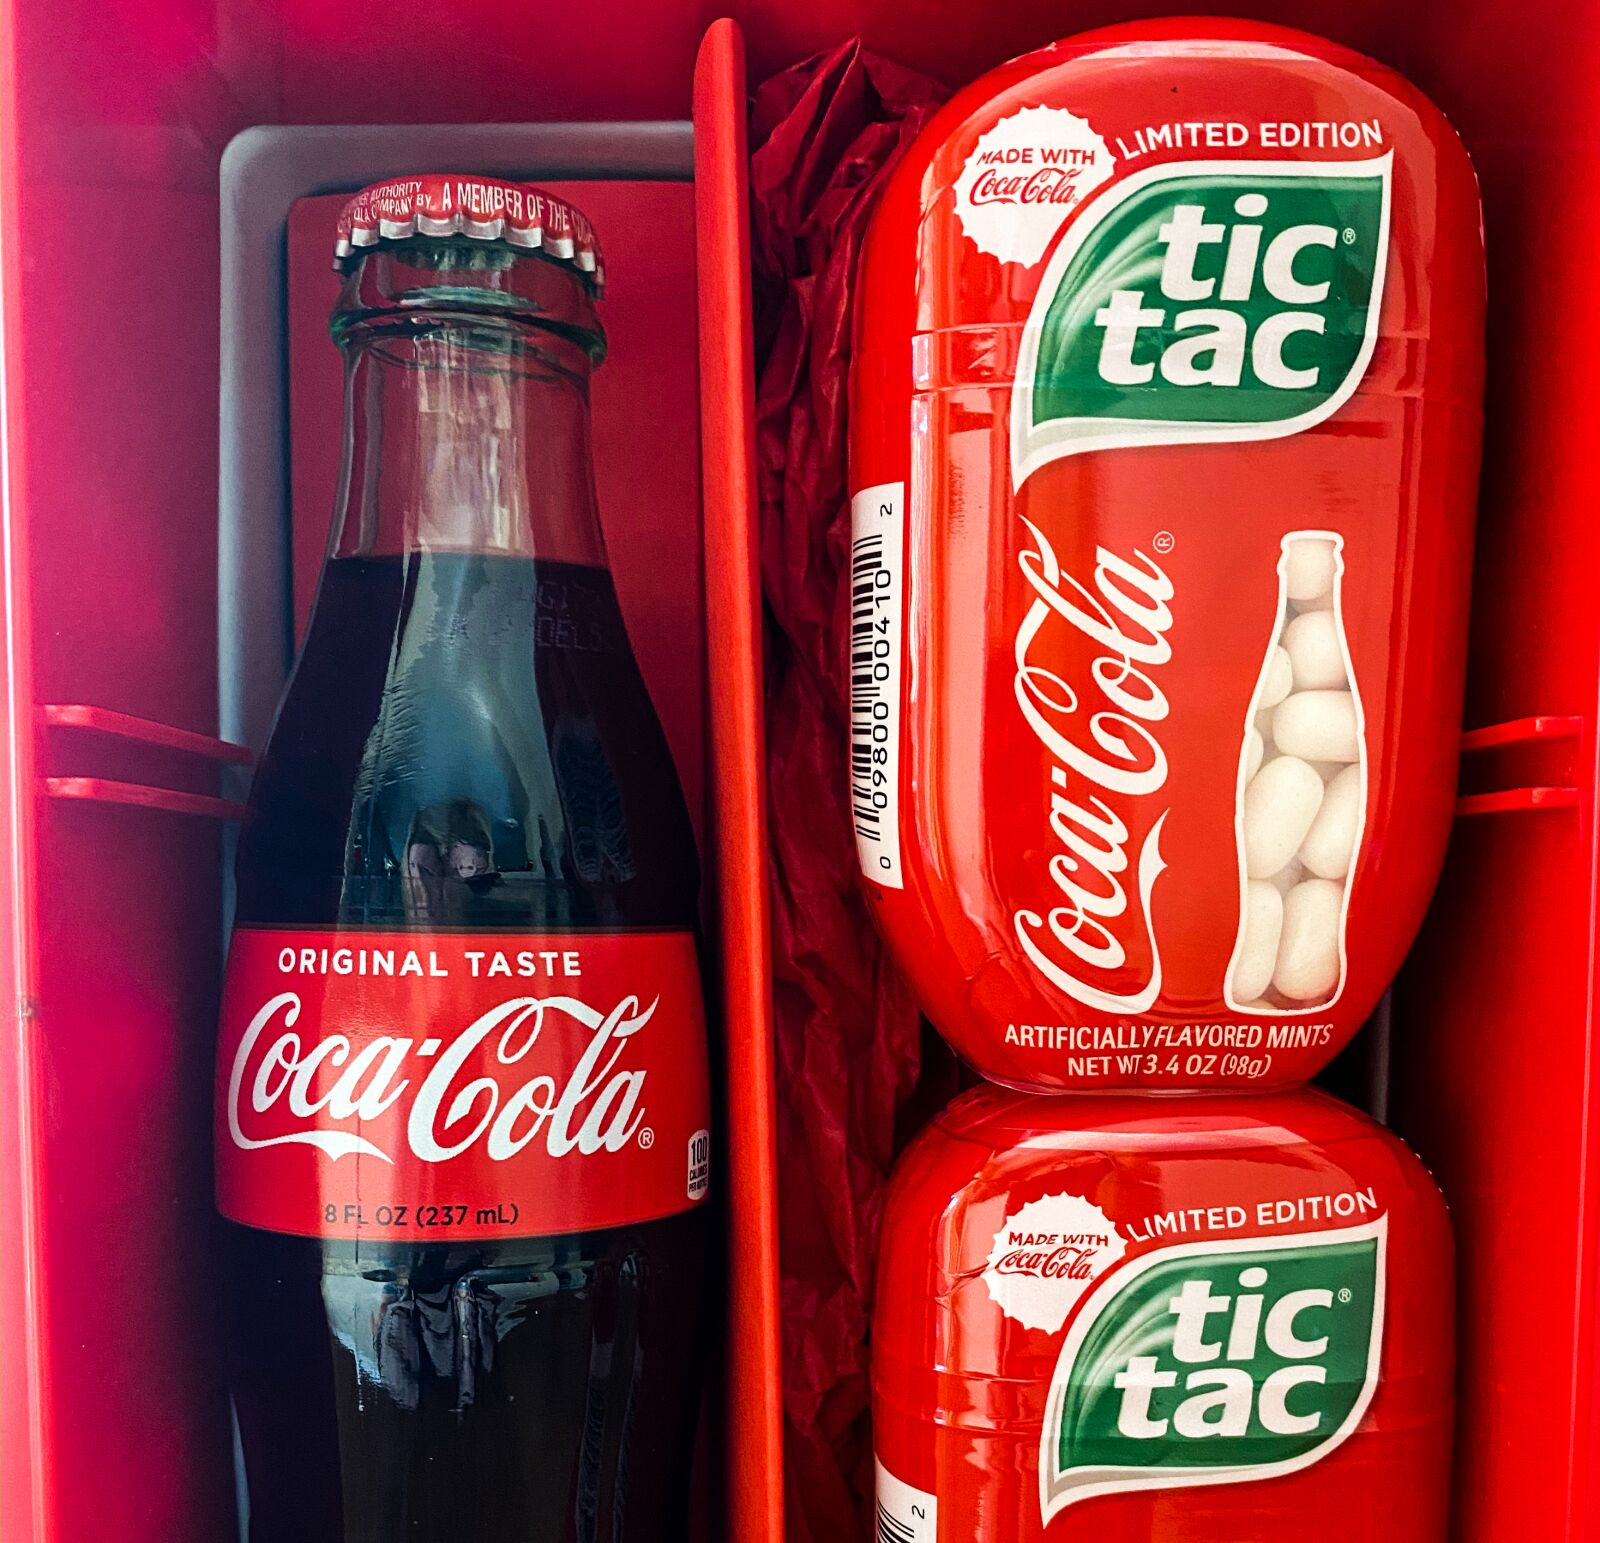 Tic Tac Coca-Cola, pop open this refreshing flavor now